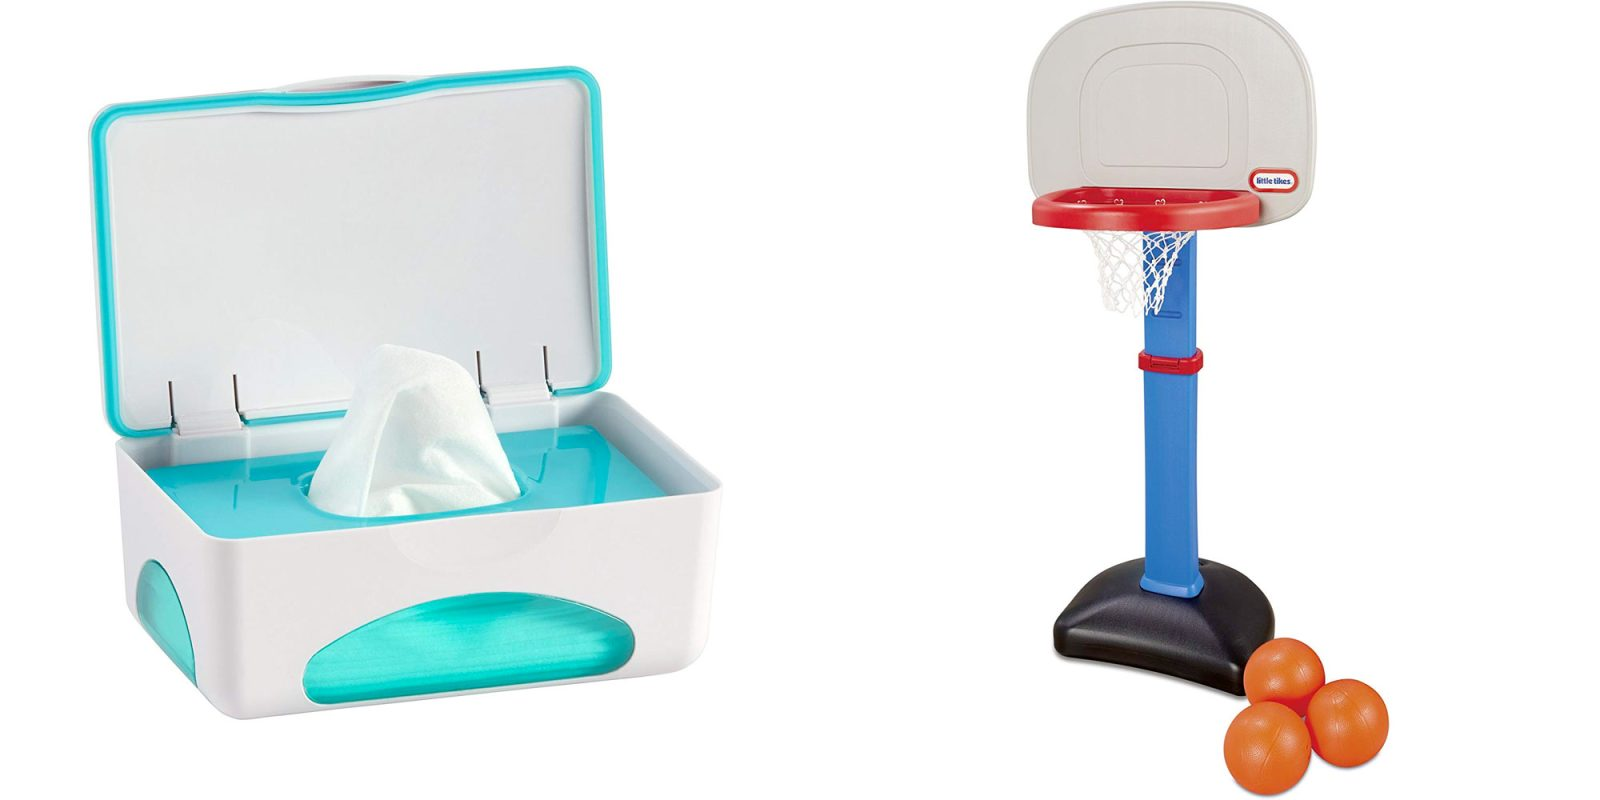 Amazon has indoor/outdoor kiddie toys on sale + baby products from $5.50